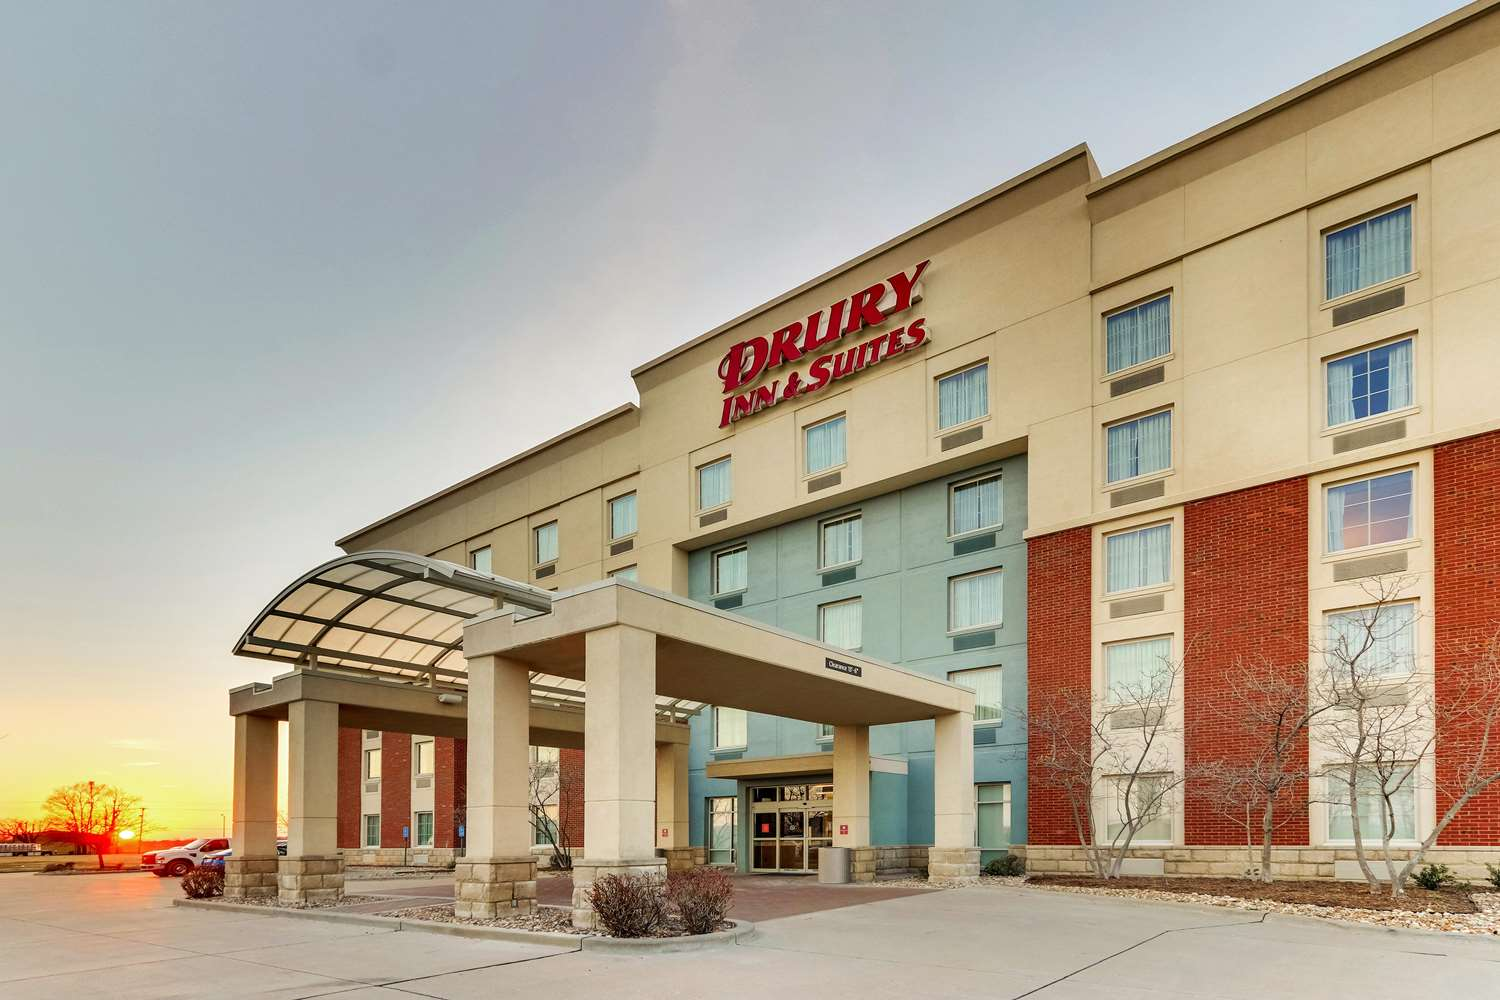 Drury Inn & Suites Sikeston